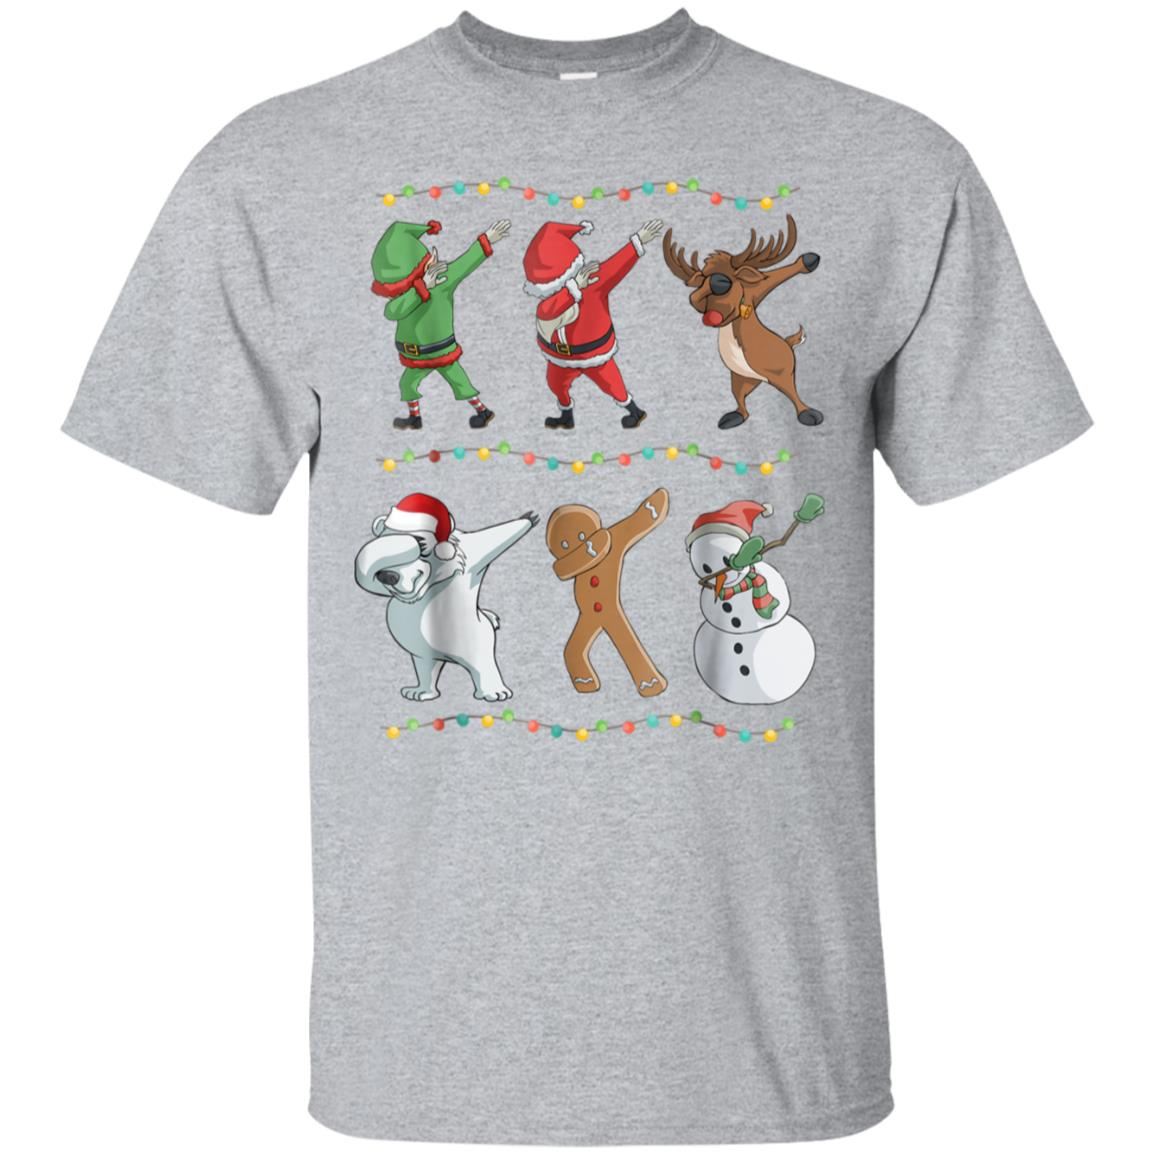 Funny Dabbing Santa and Friends T-Shirt Christmas Gift 99promocode